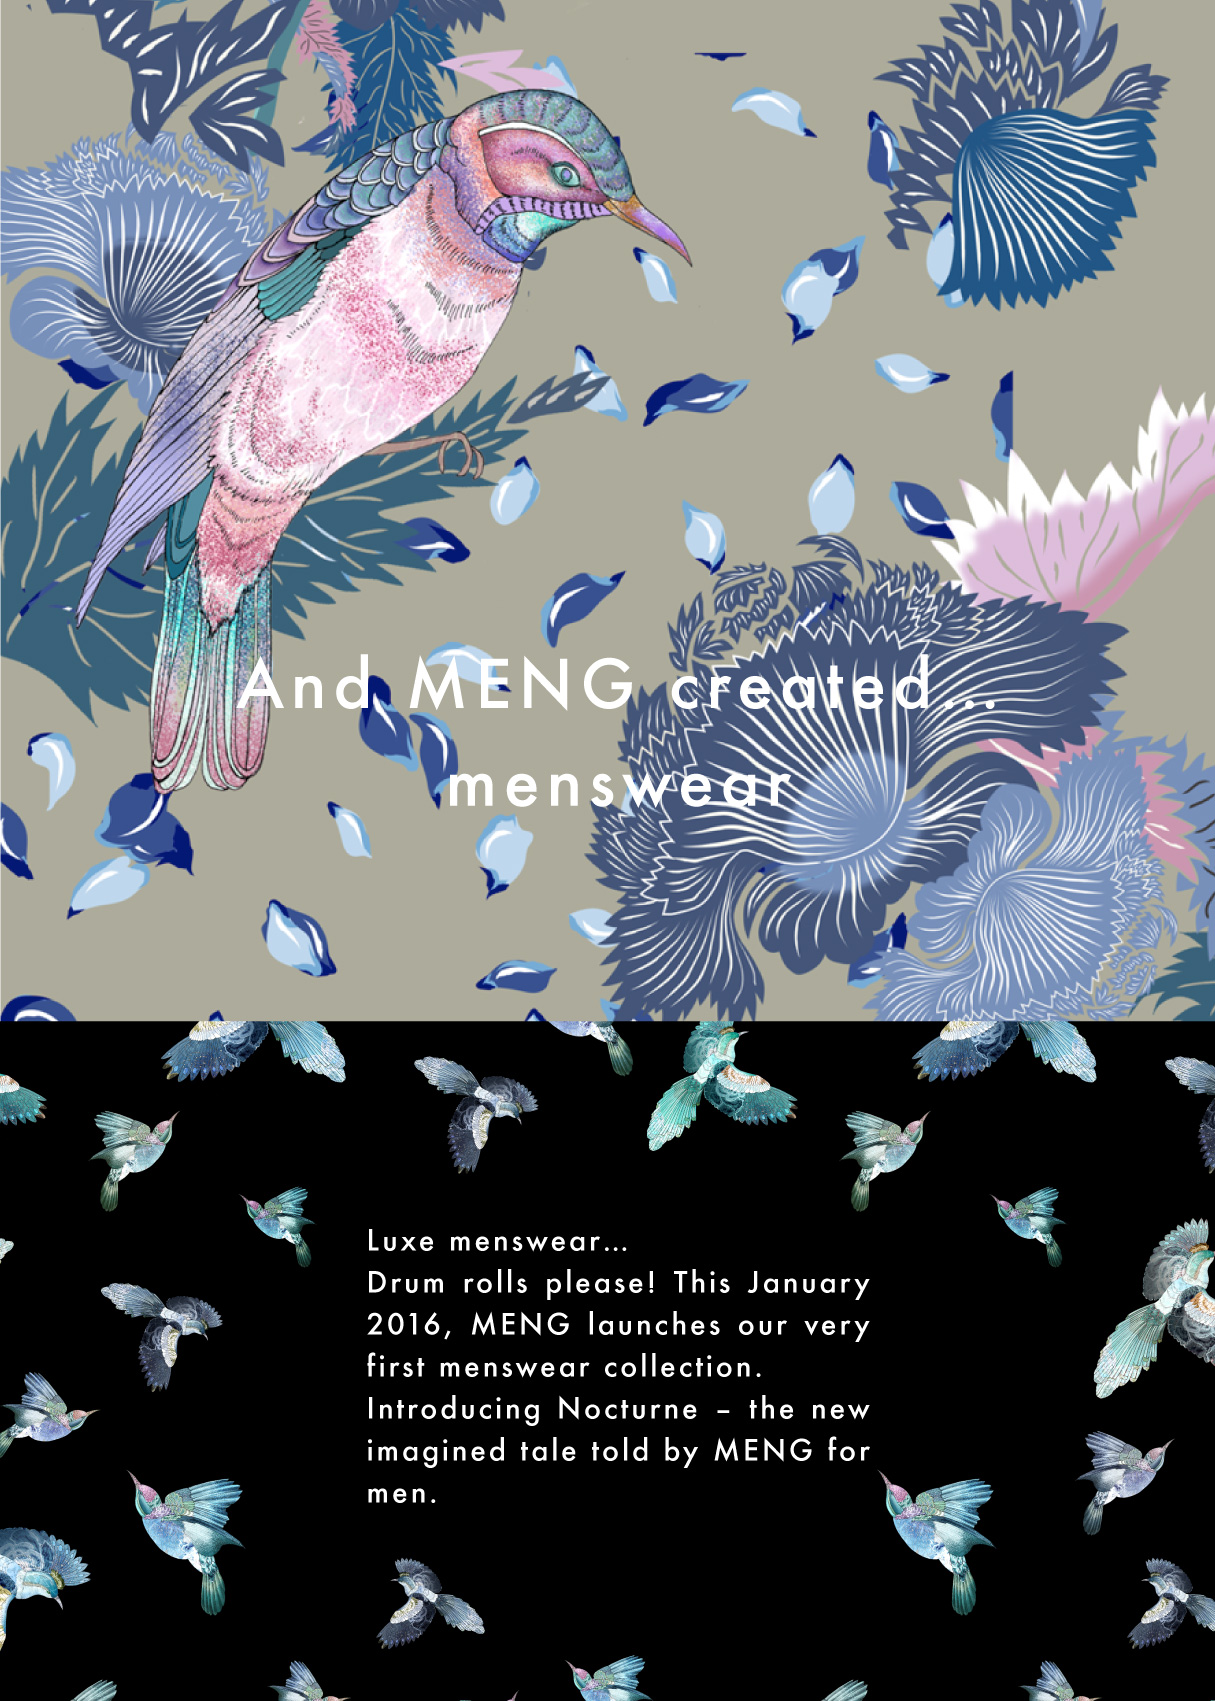 3-Meng-menswear-launch.jpg